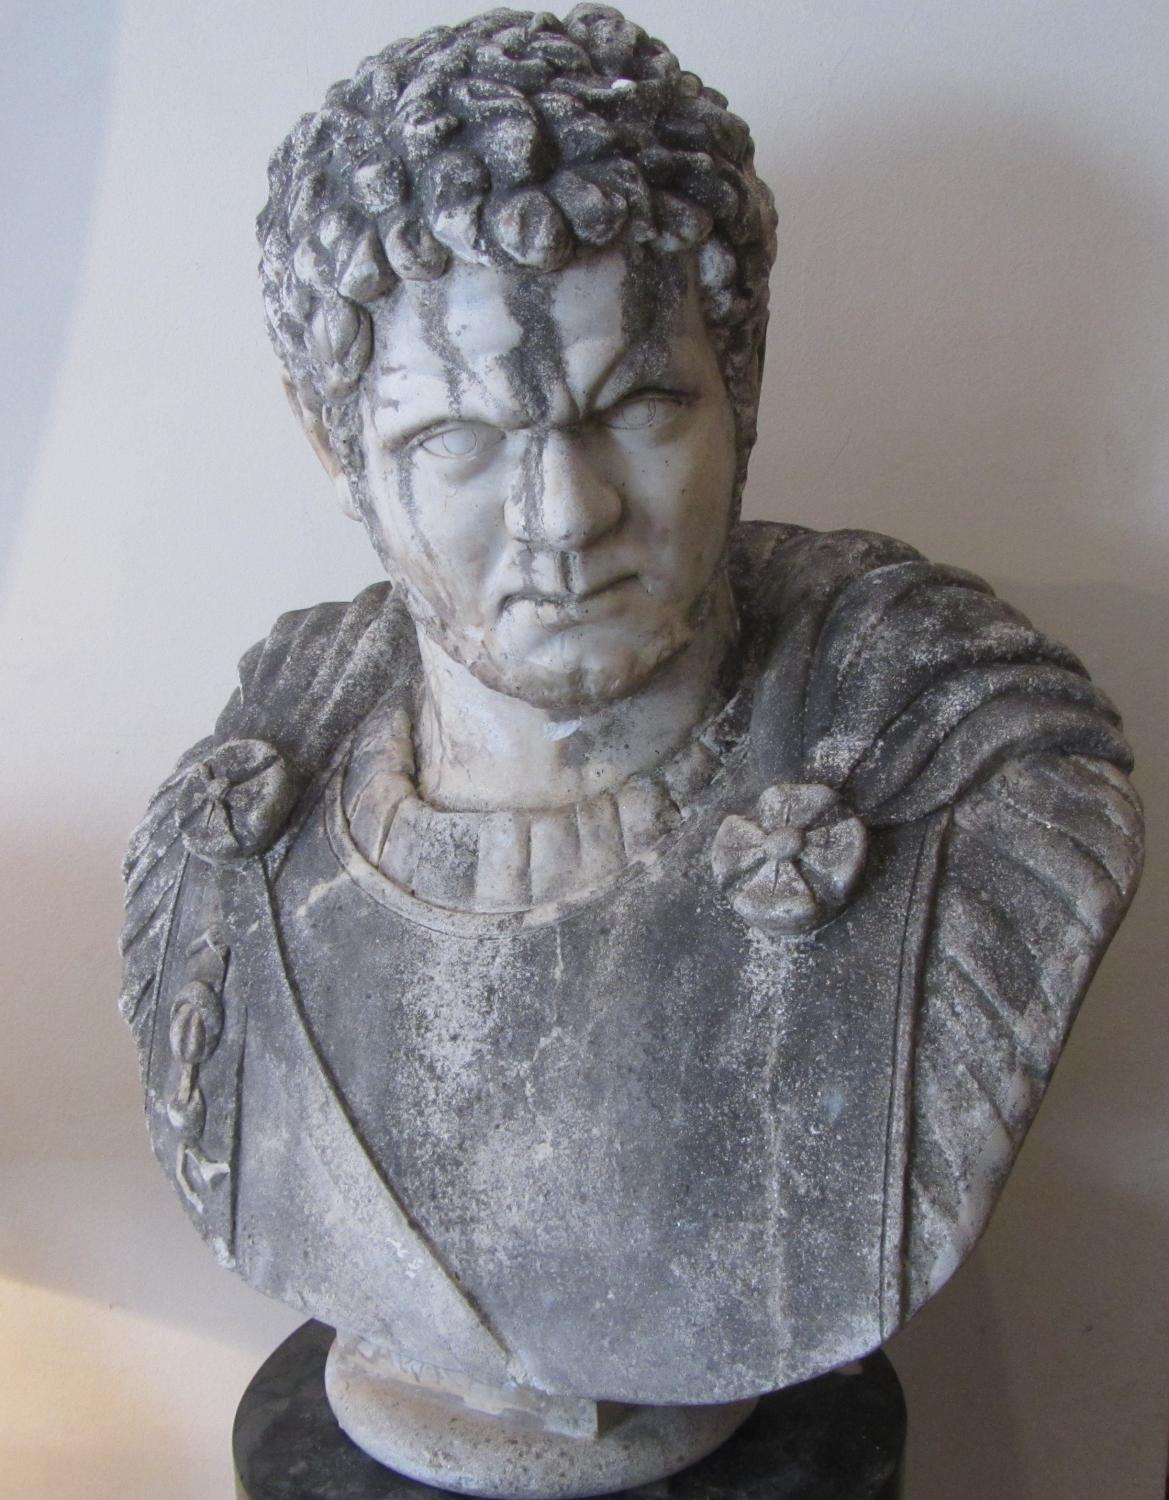 A bust of Roman emperor Caracalla